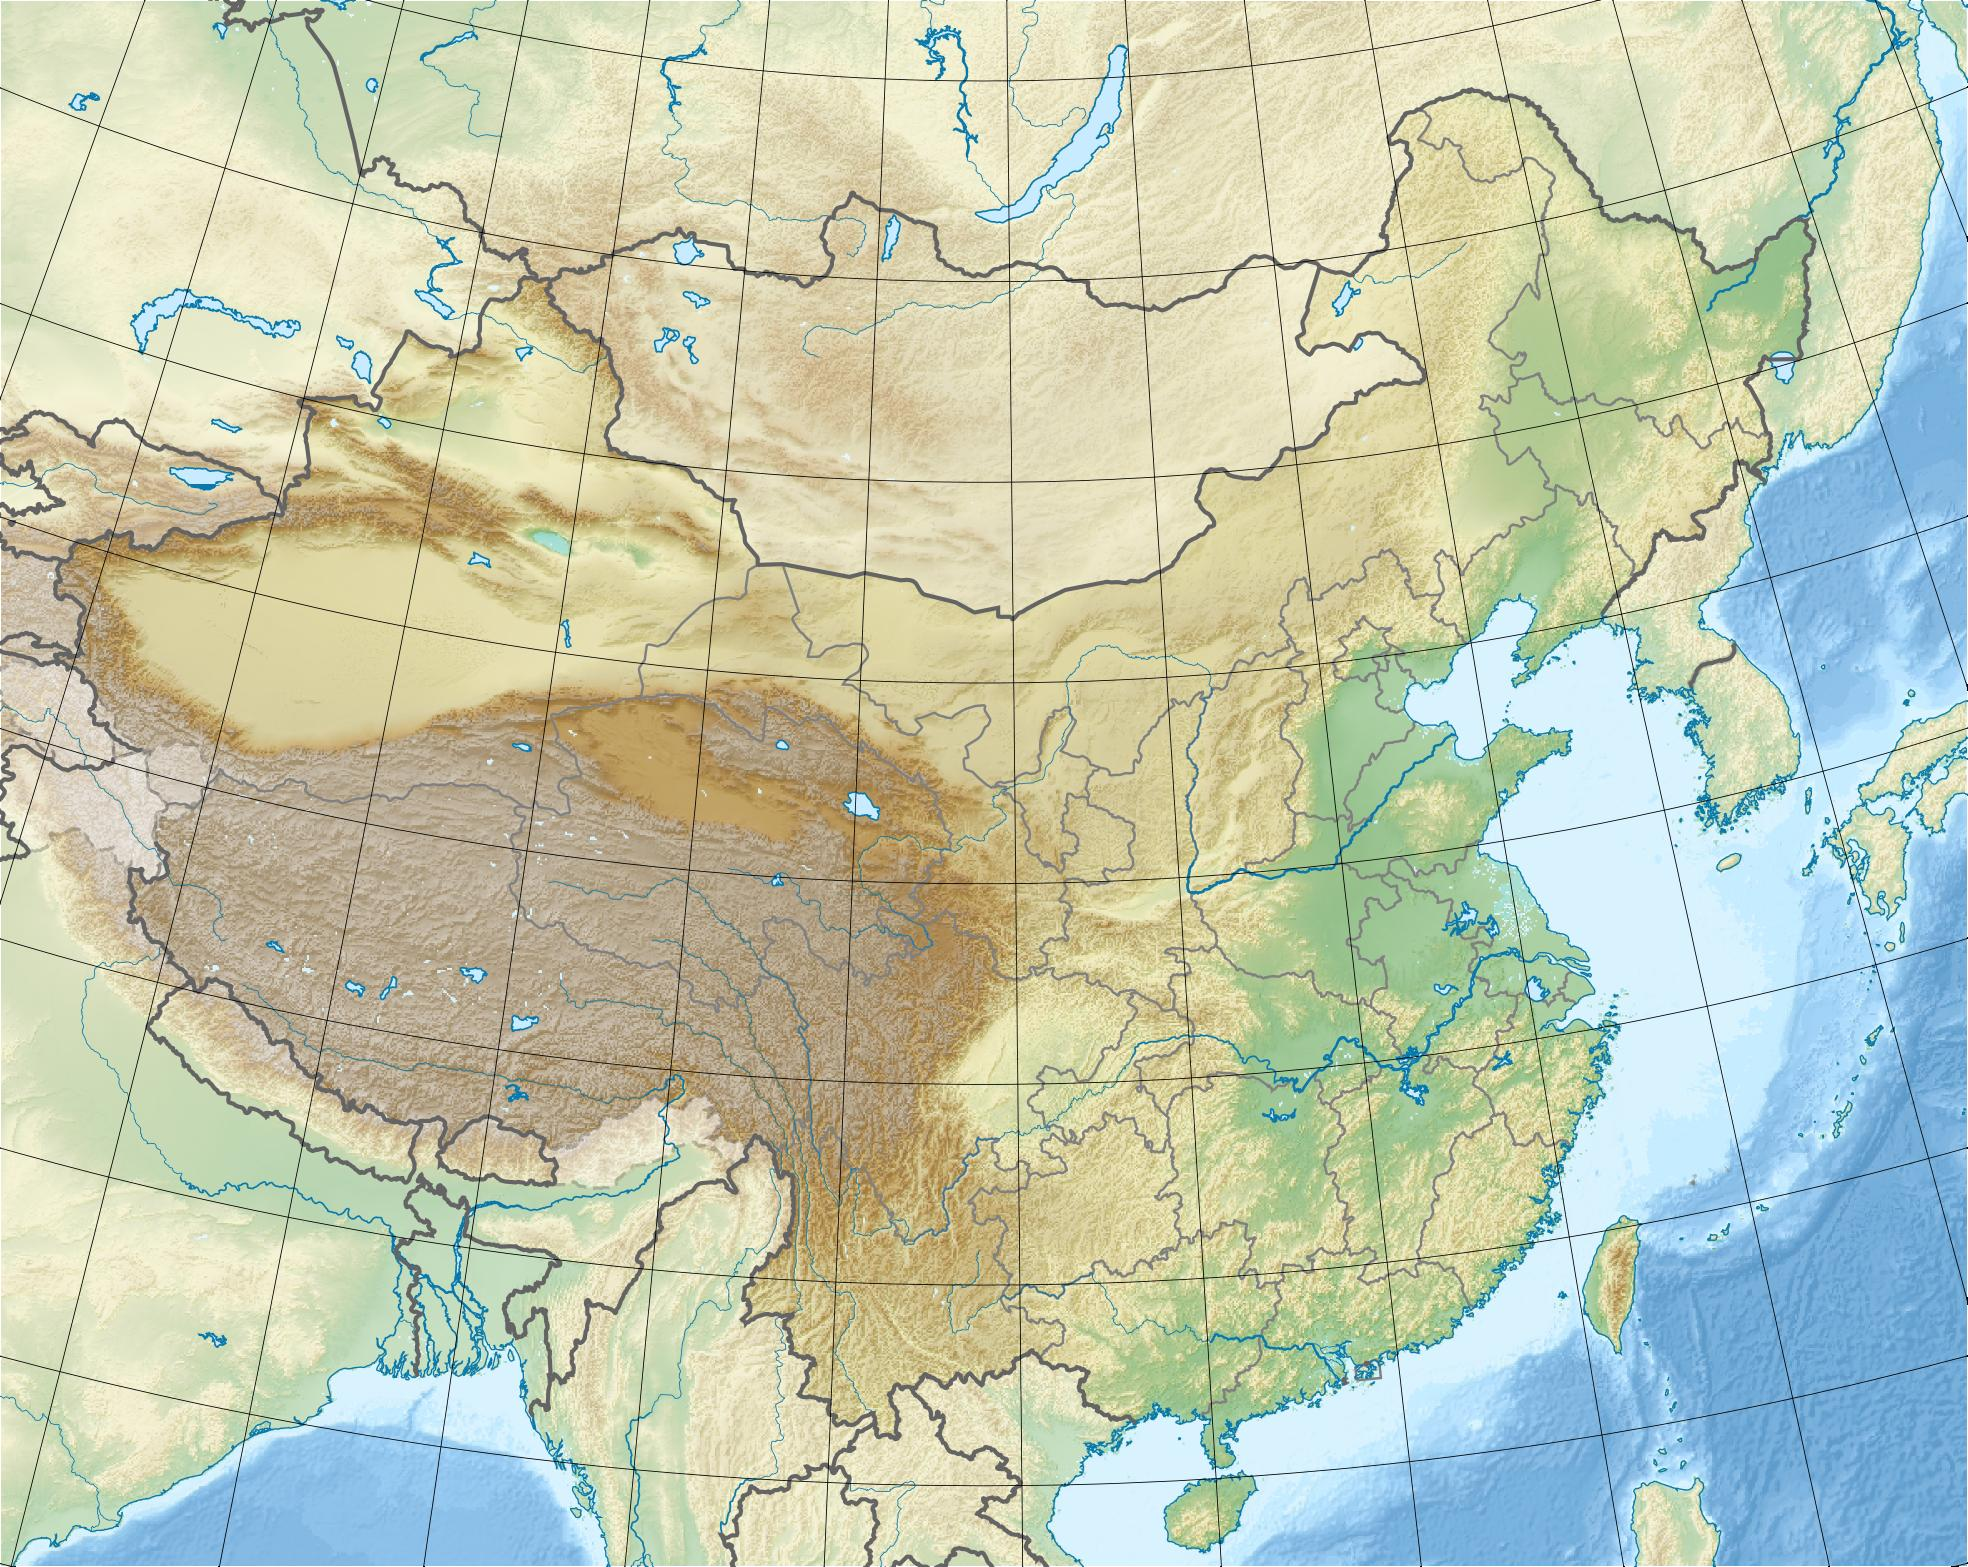 File:China edcp relief location map.jpg - Wikimedia Commons on